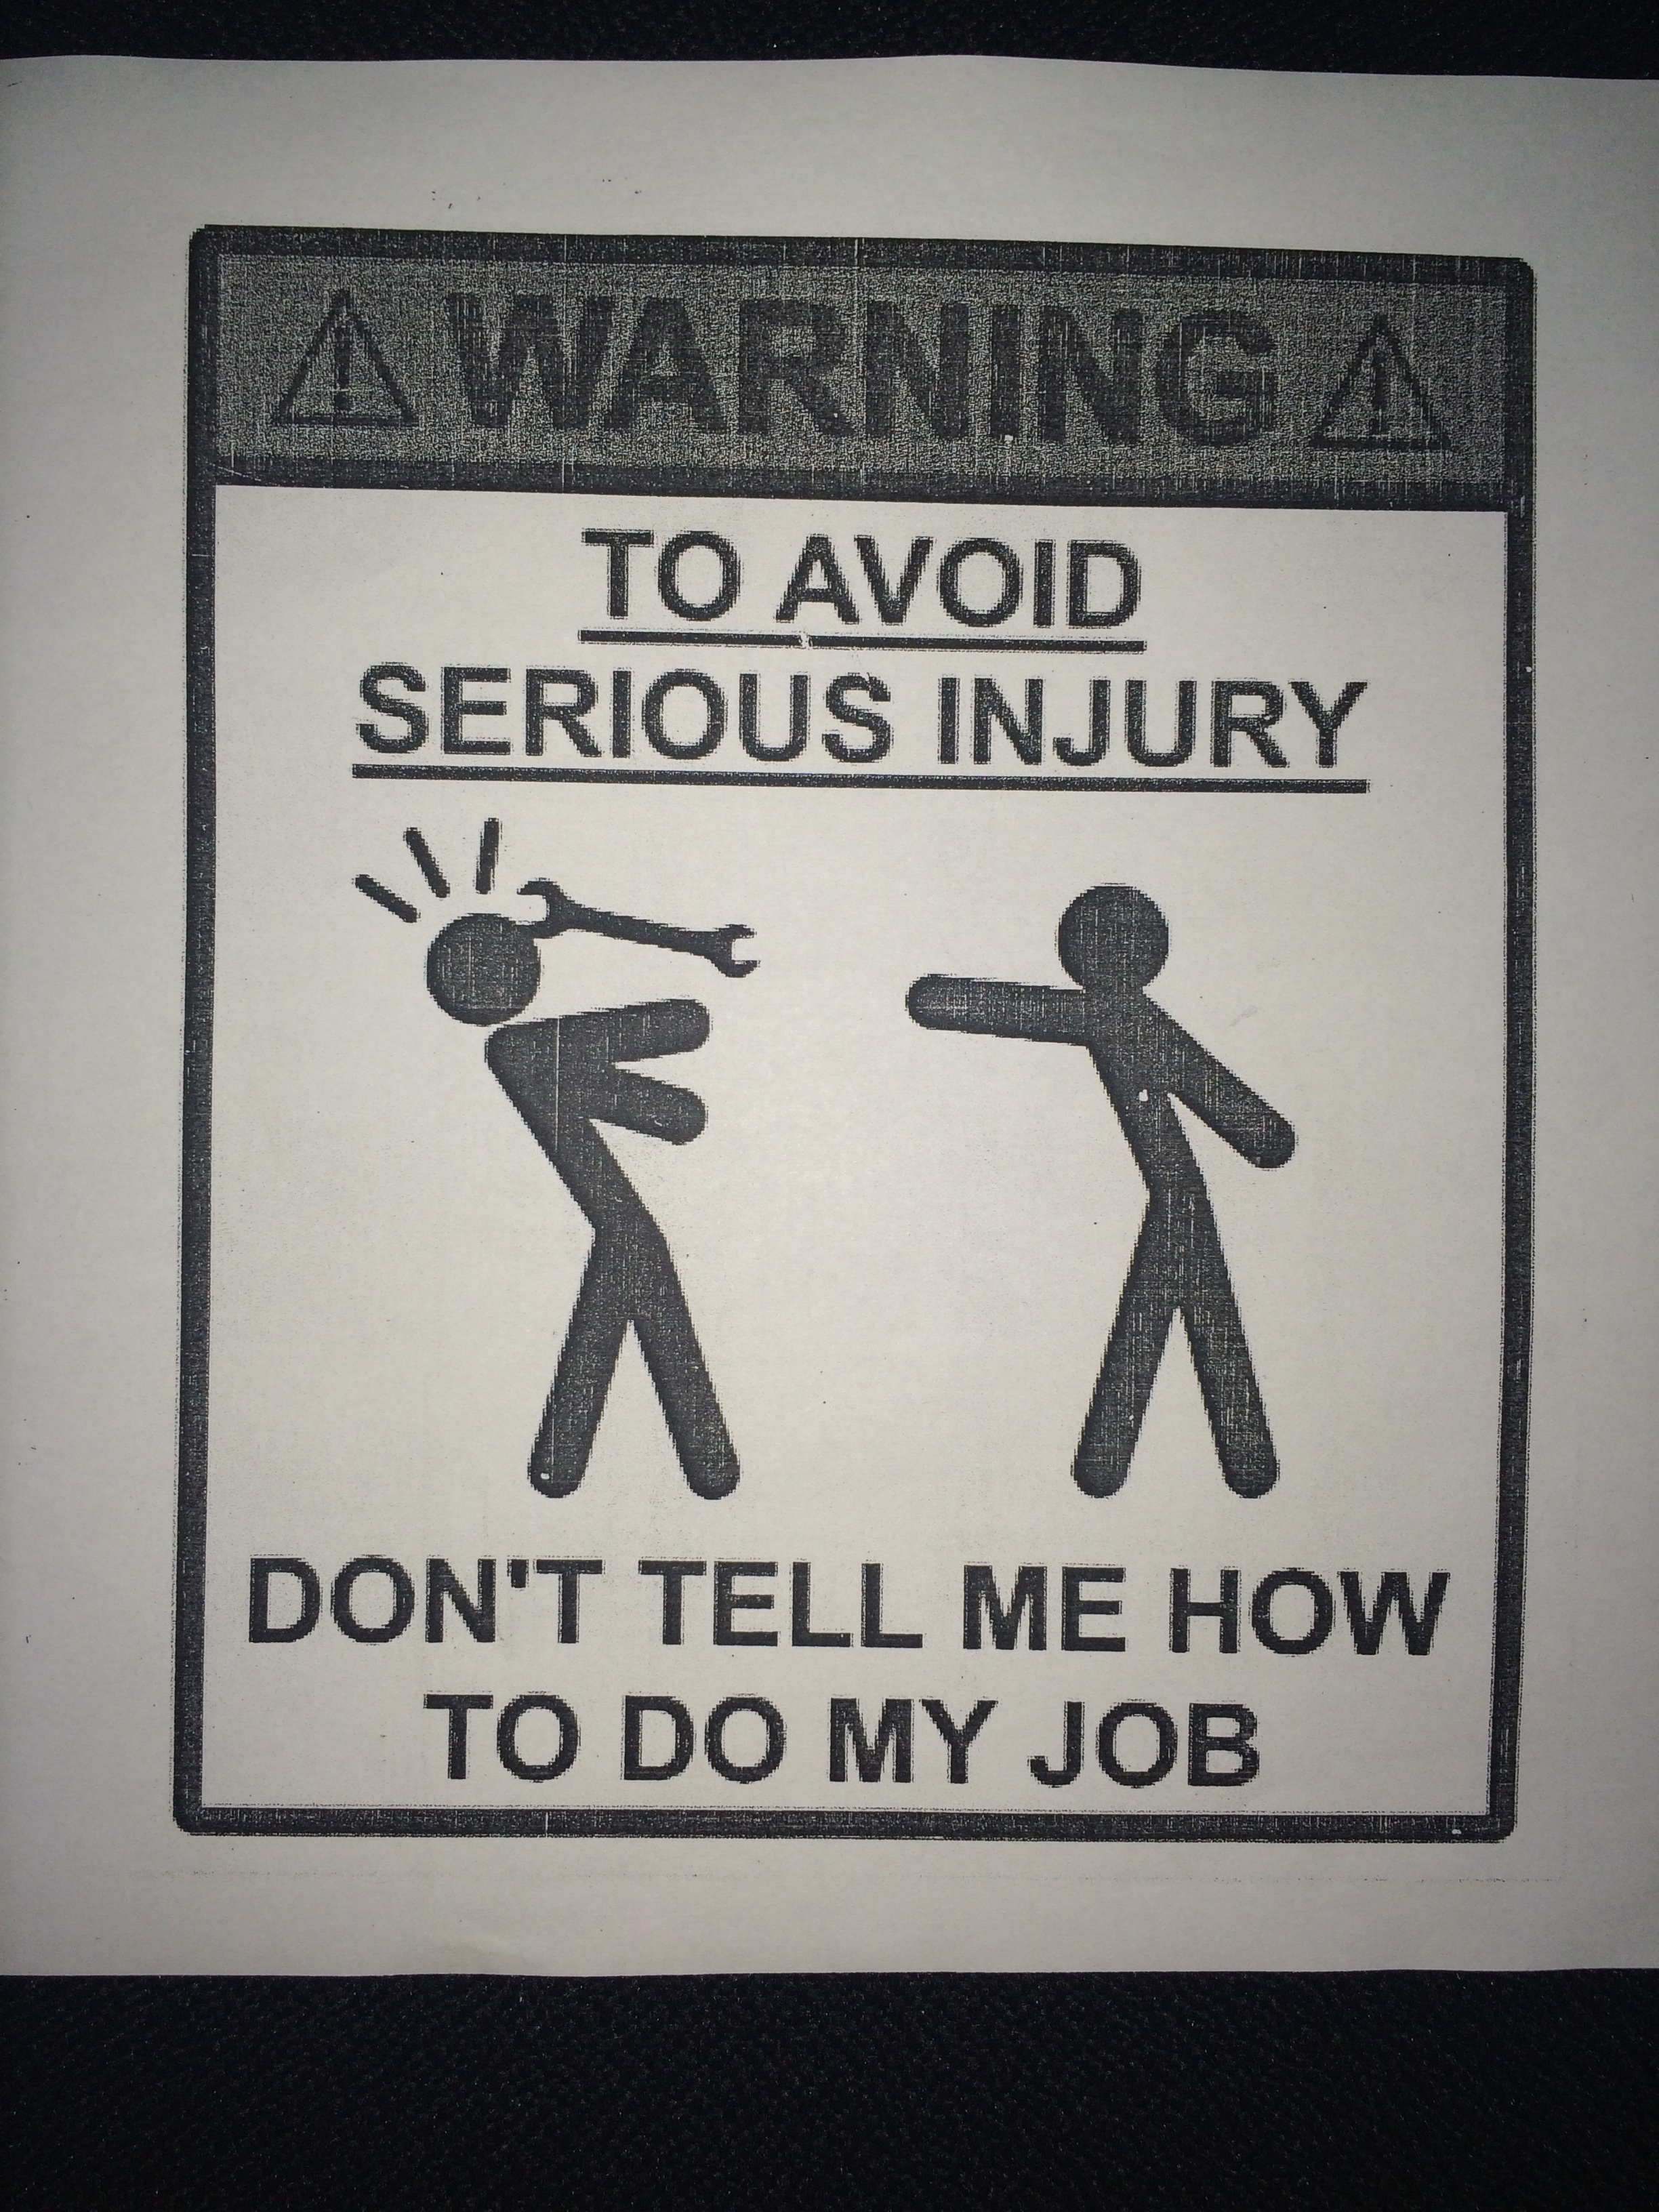 Warning: to avoid serious injury, don't tell me how to do my job